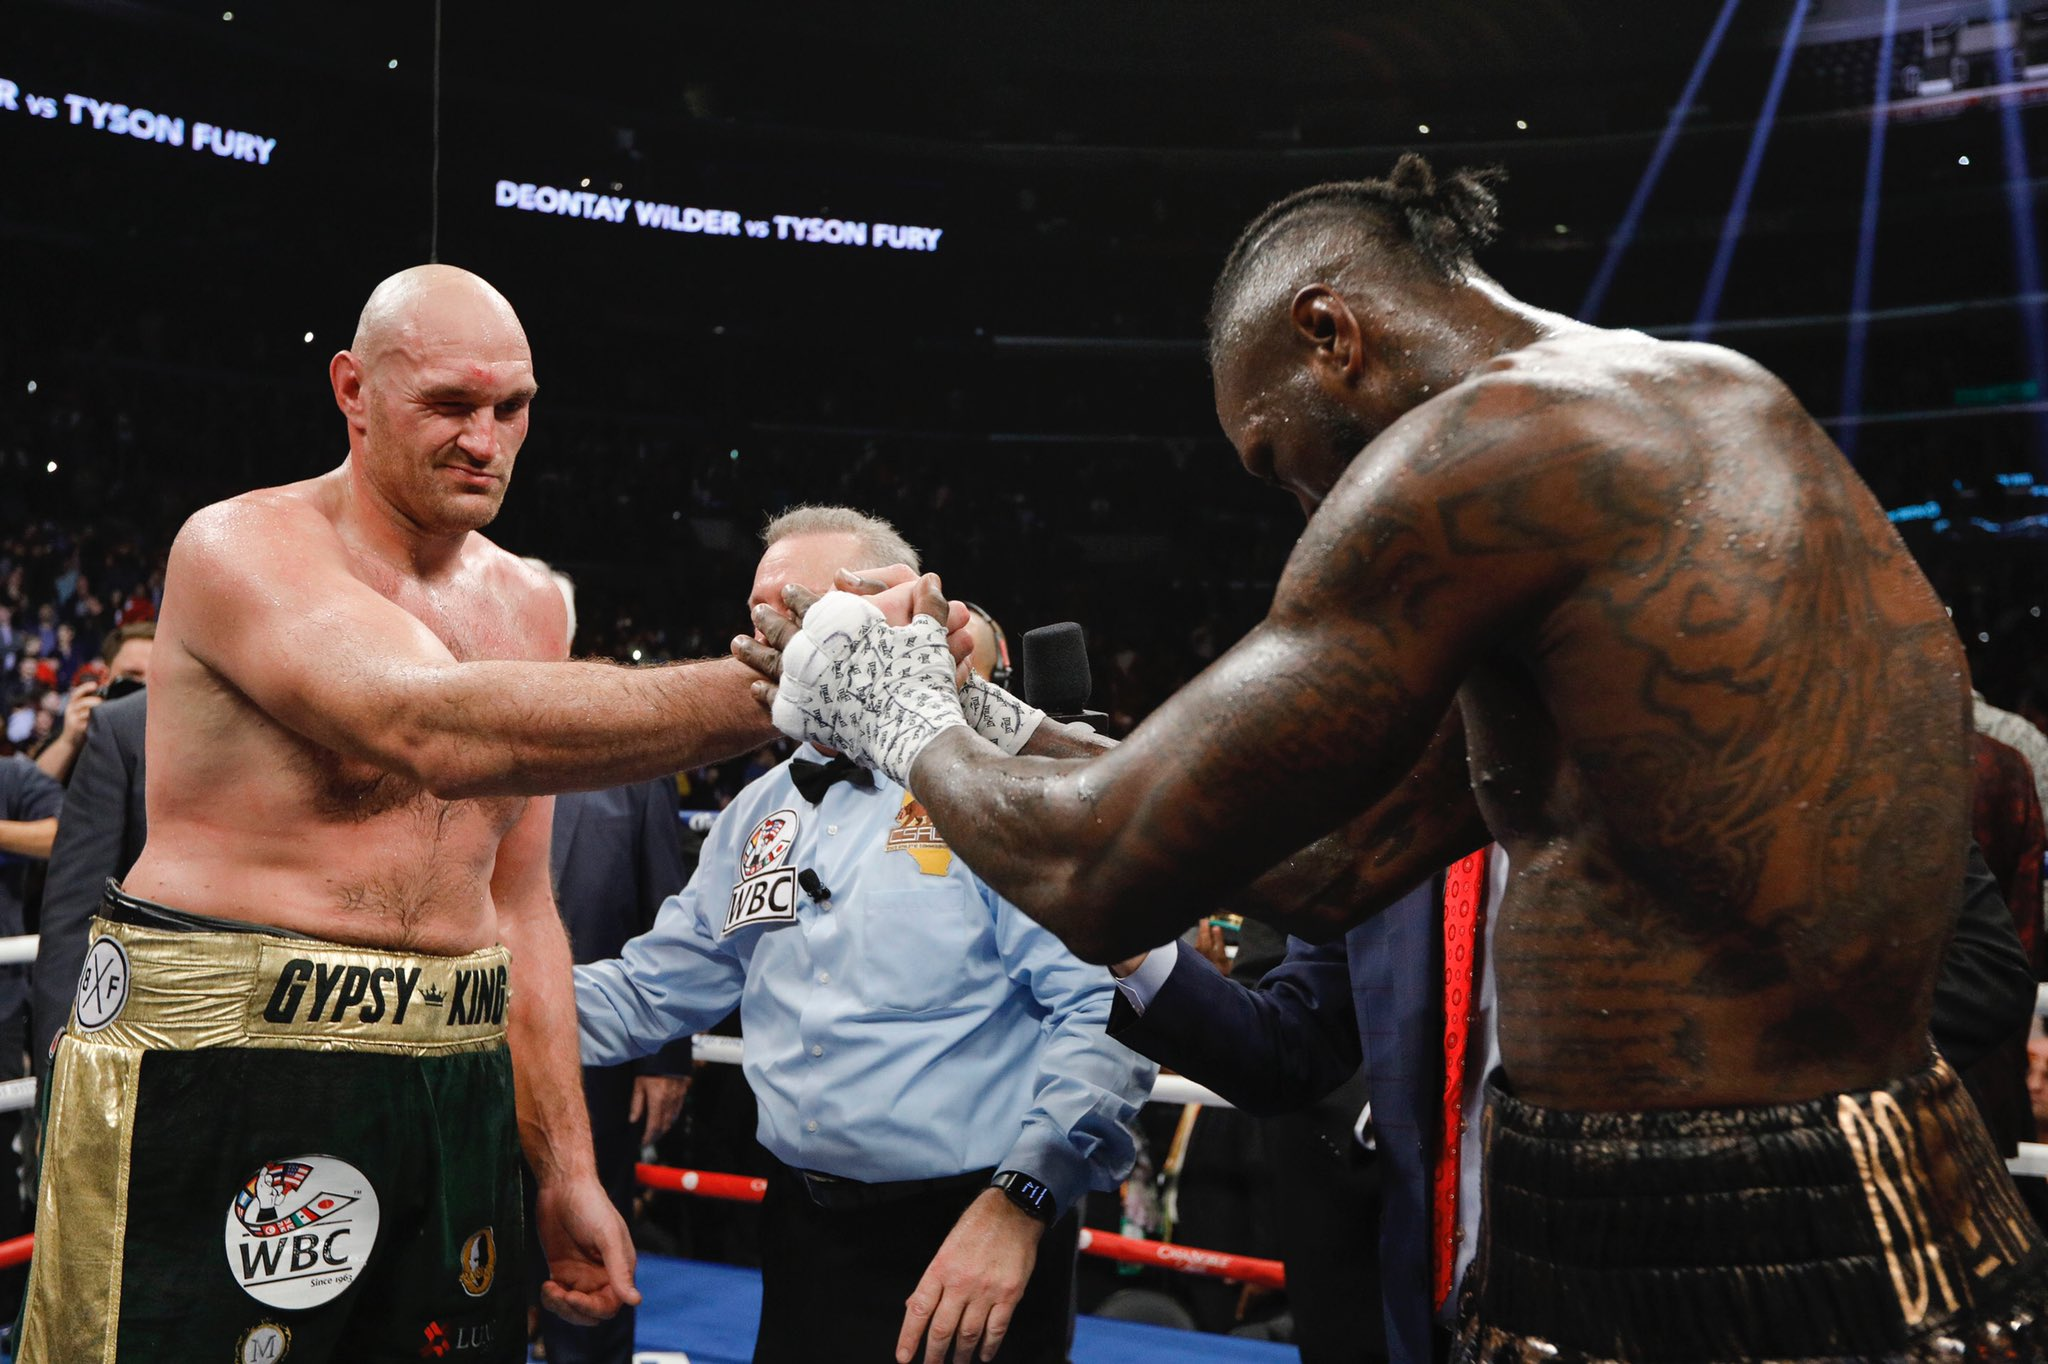 furywilder - Tyson Fury Claims Deontay Wilder Rematch Set For February